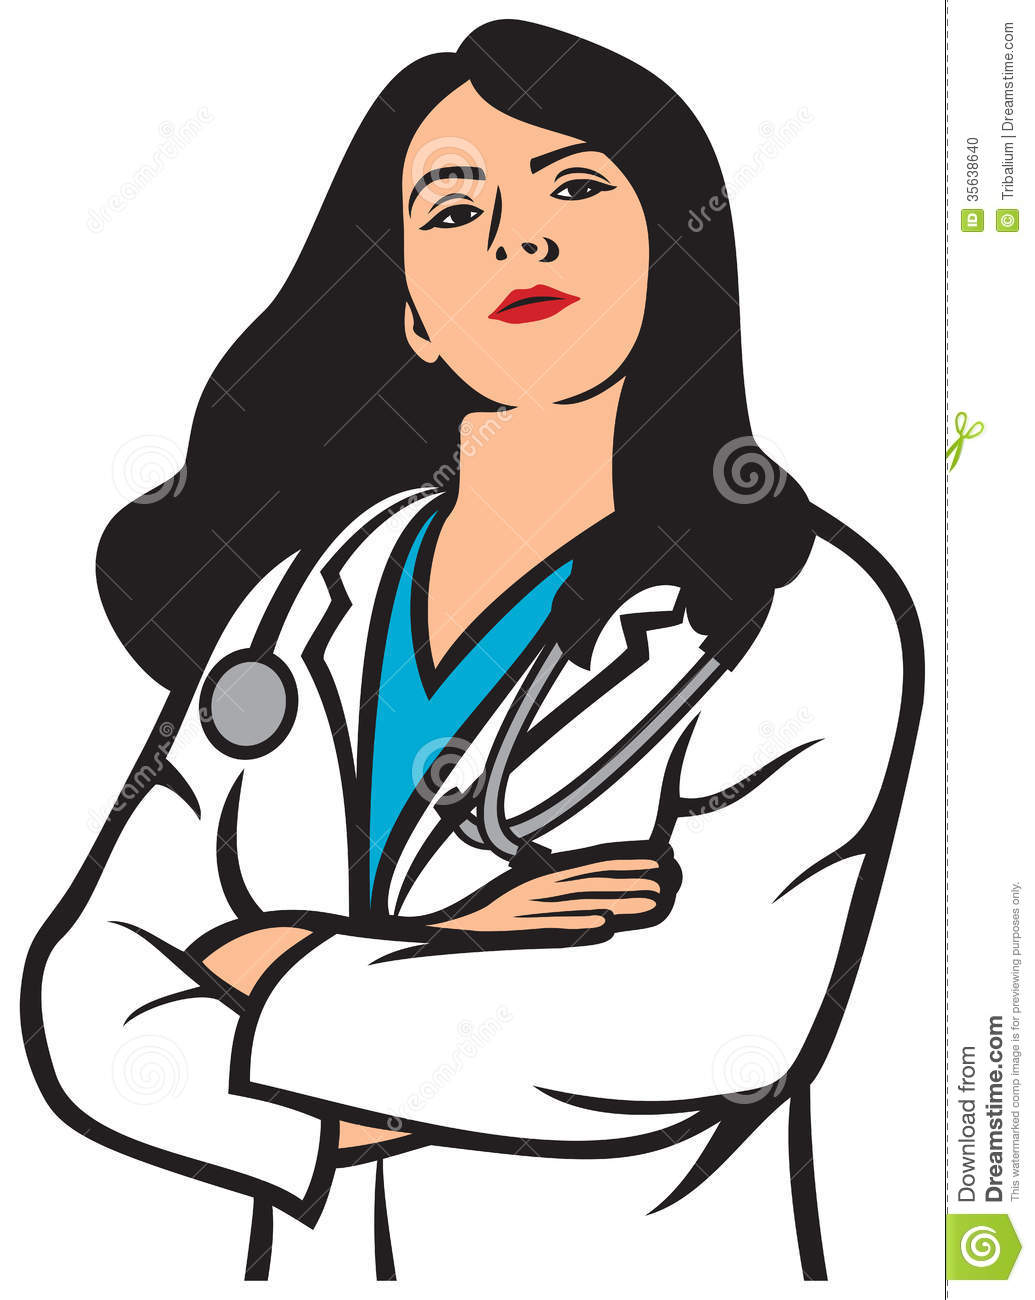 woman doctor sign, woman   clipart panda - free clipart images